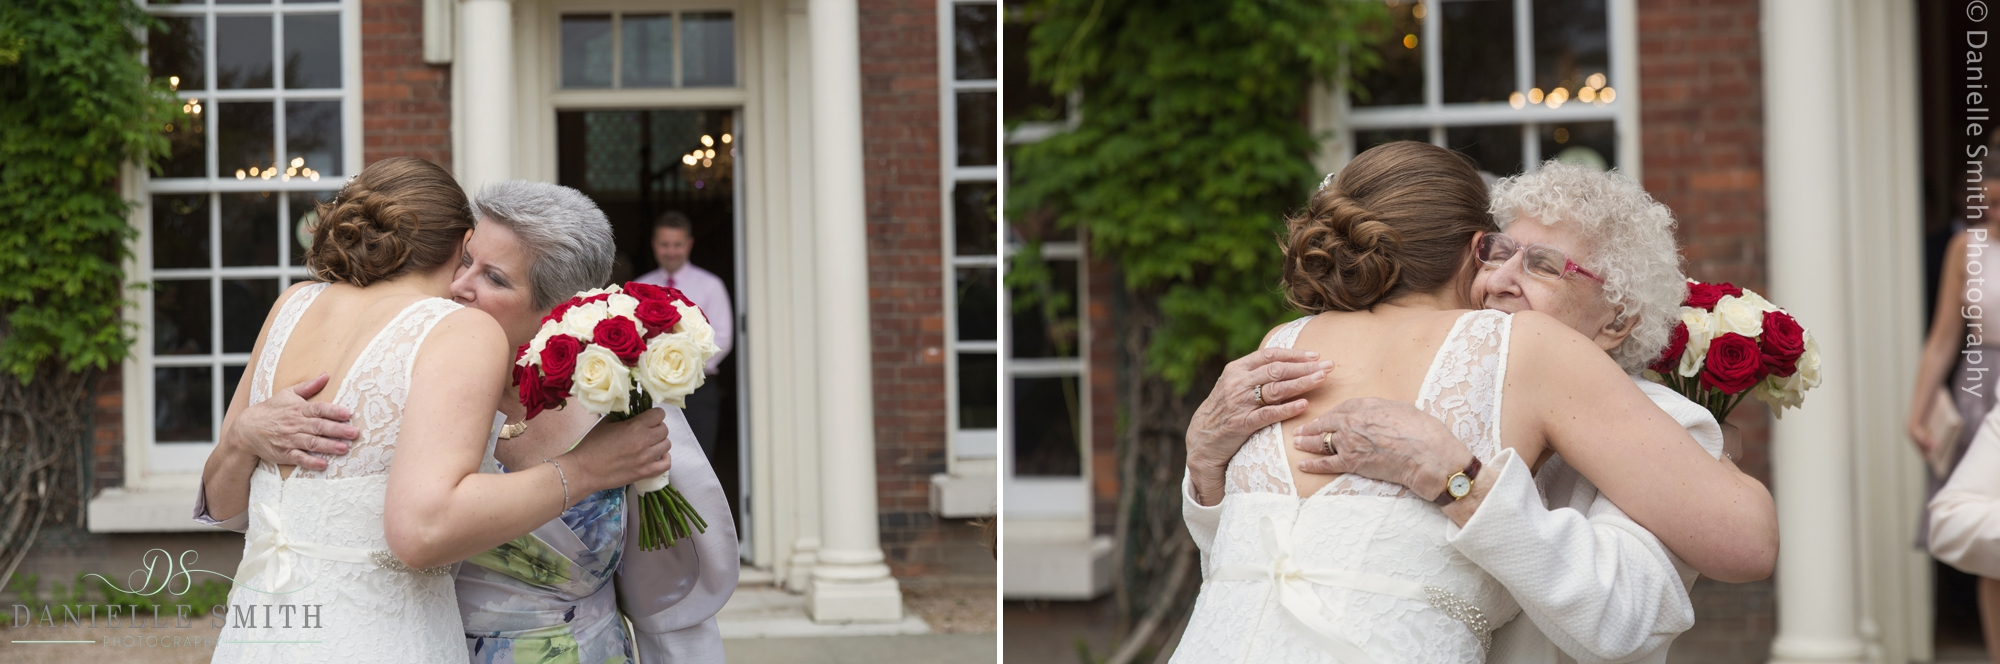 Langtons Wedding Photography- tracy and clive 21.jpg